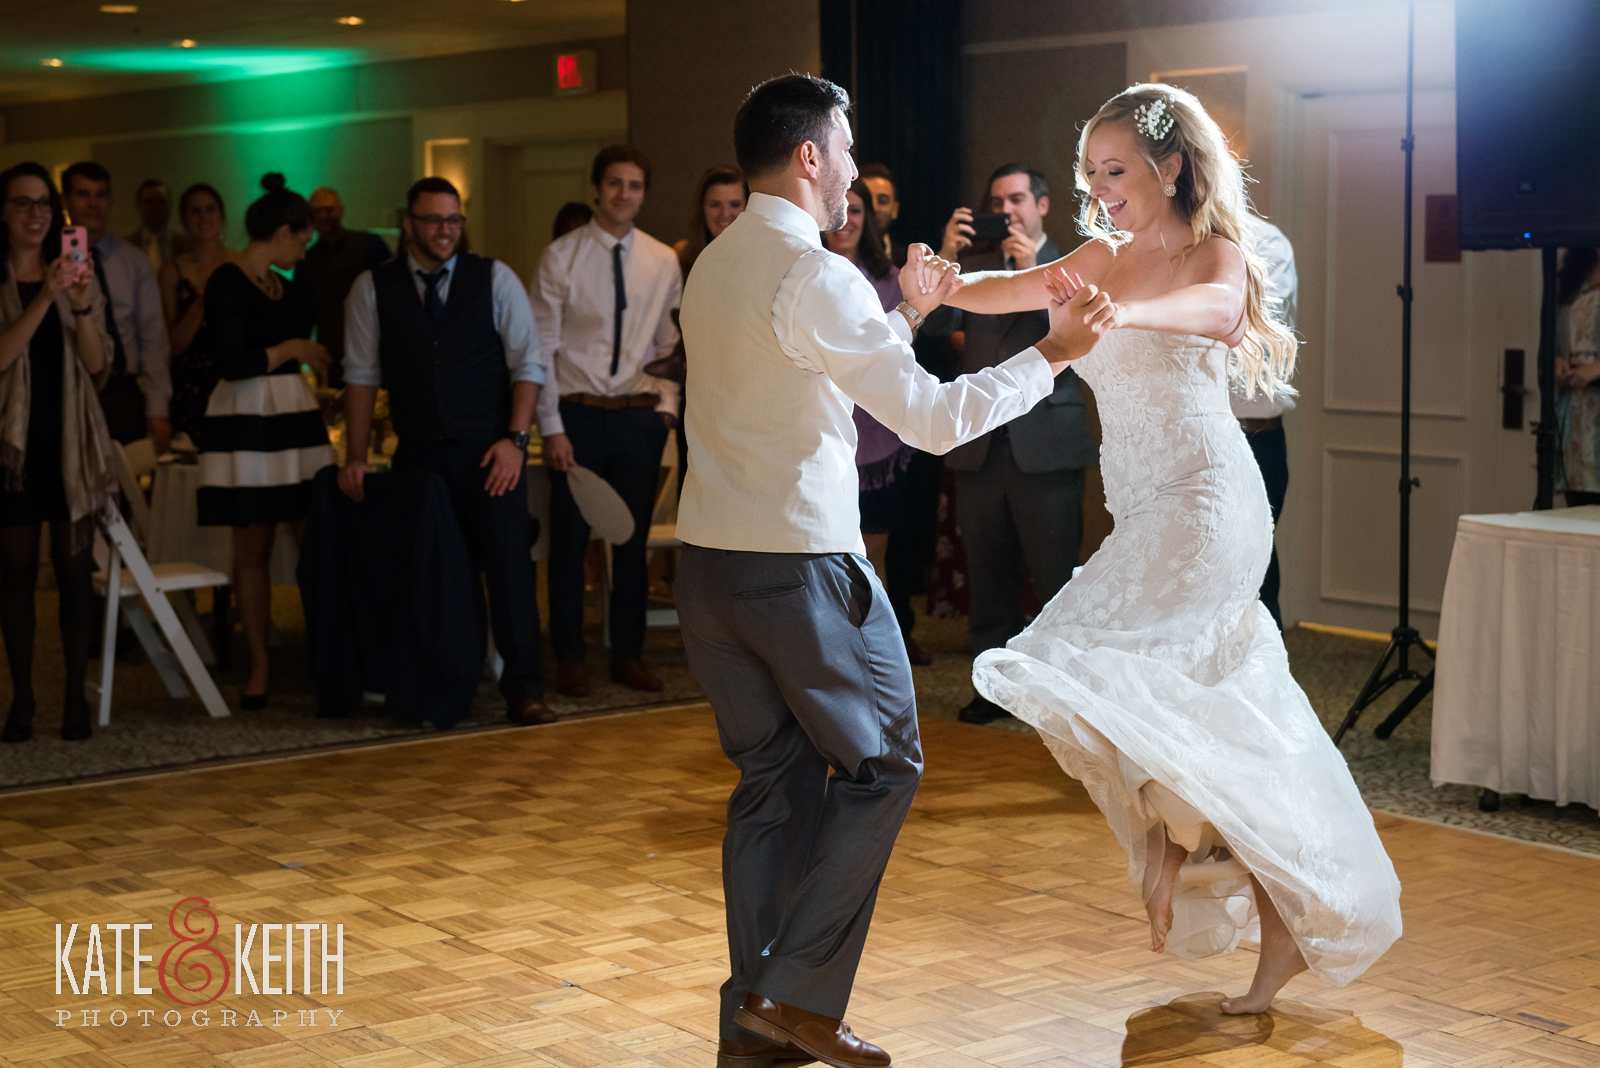 New Hampshire, Lakes Region, Lake Winnipesaukee, The Margate Resort, wedding, outdoor wedding, lakeside wedding, wedding reception, grand entrance, choreographed first dance, wedding dance, bride and groom dance, dance moves